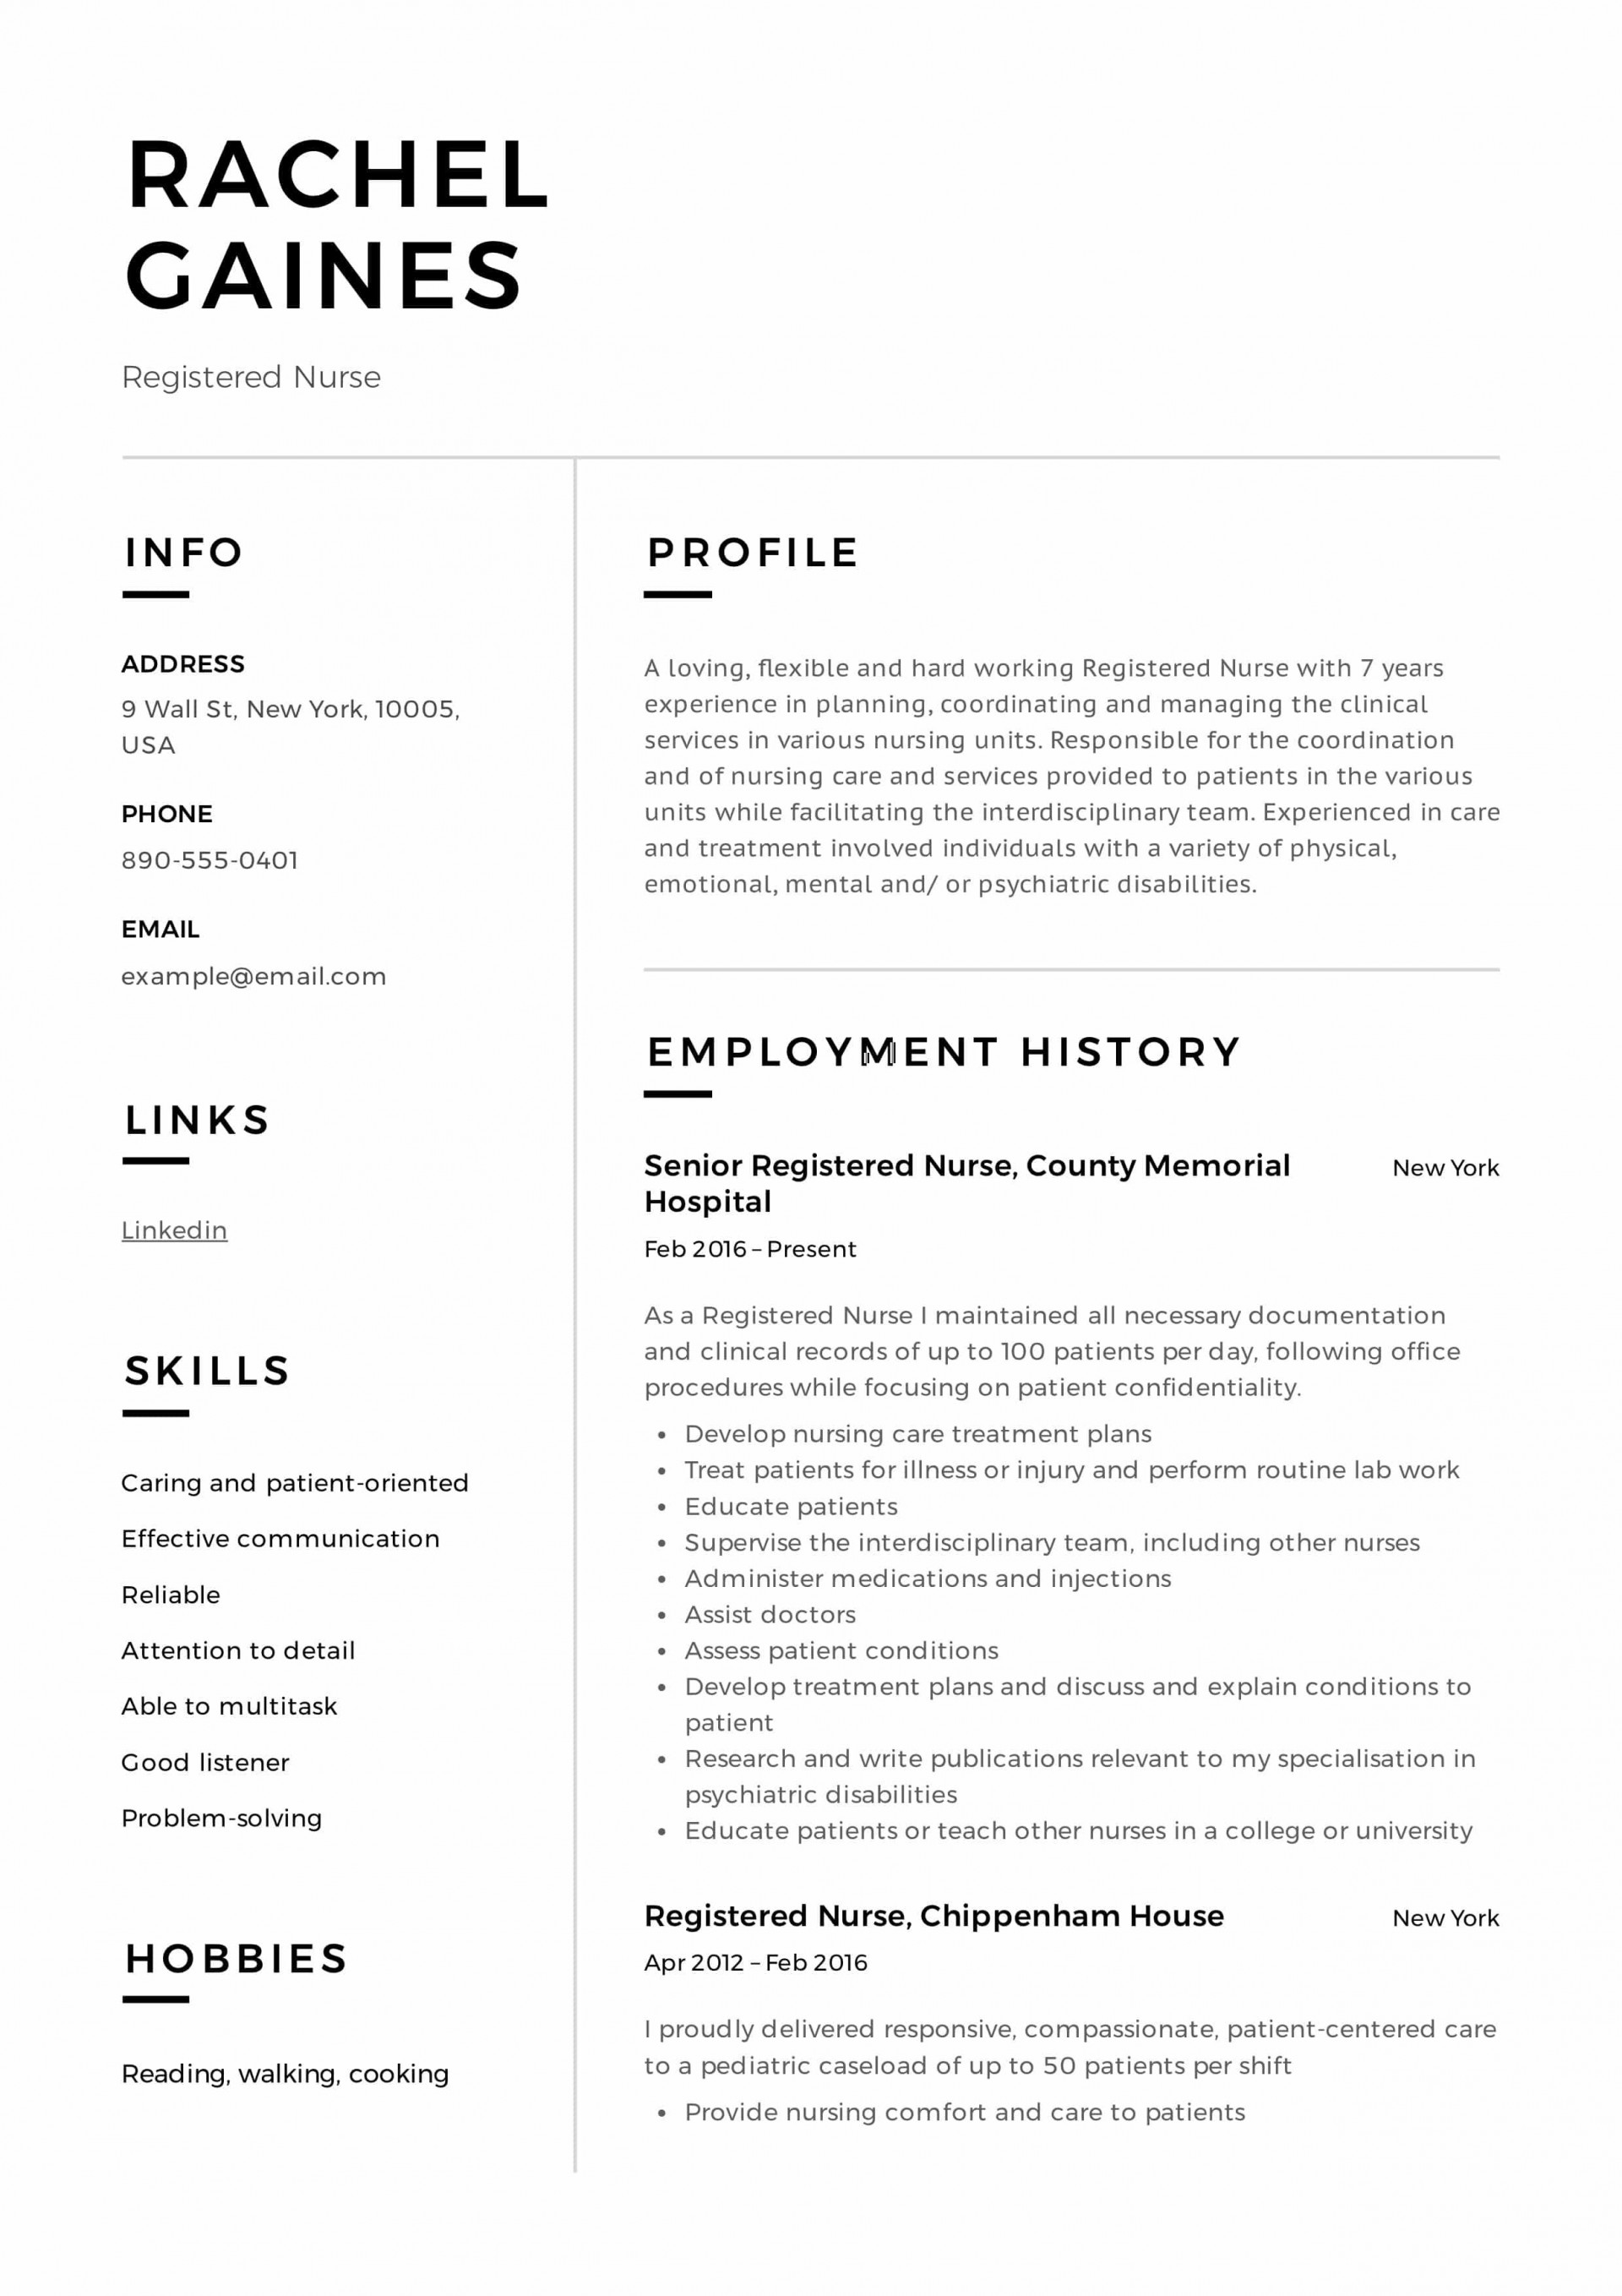 008 Impressive Resume Template For Nurse Inspiration  Sample Nursing Assistant With No Experience Rn' Free1920